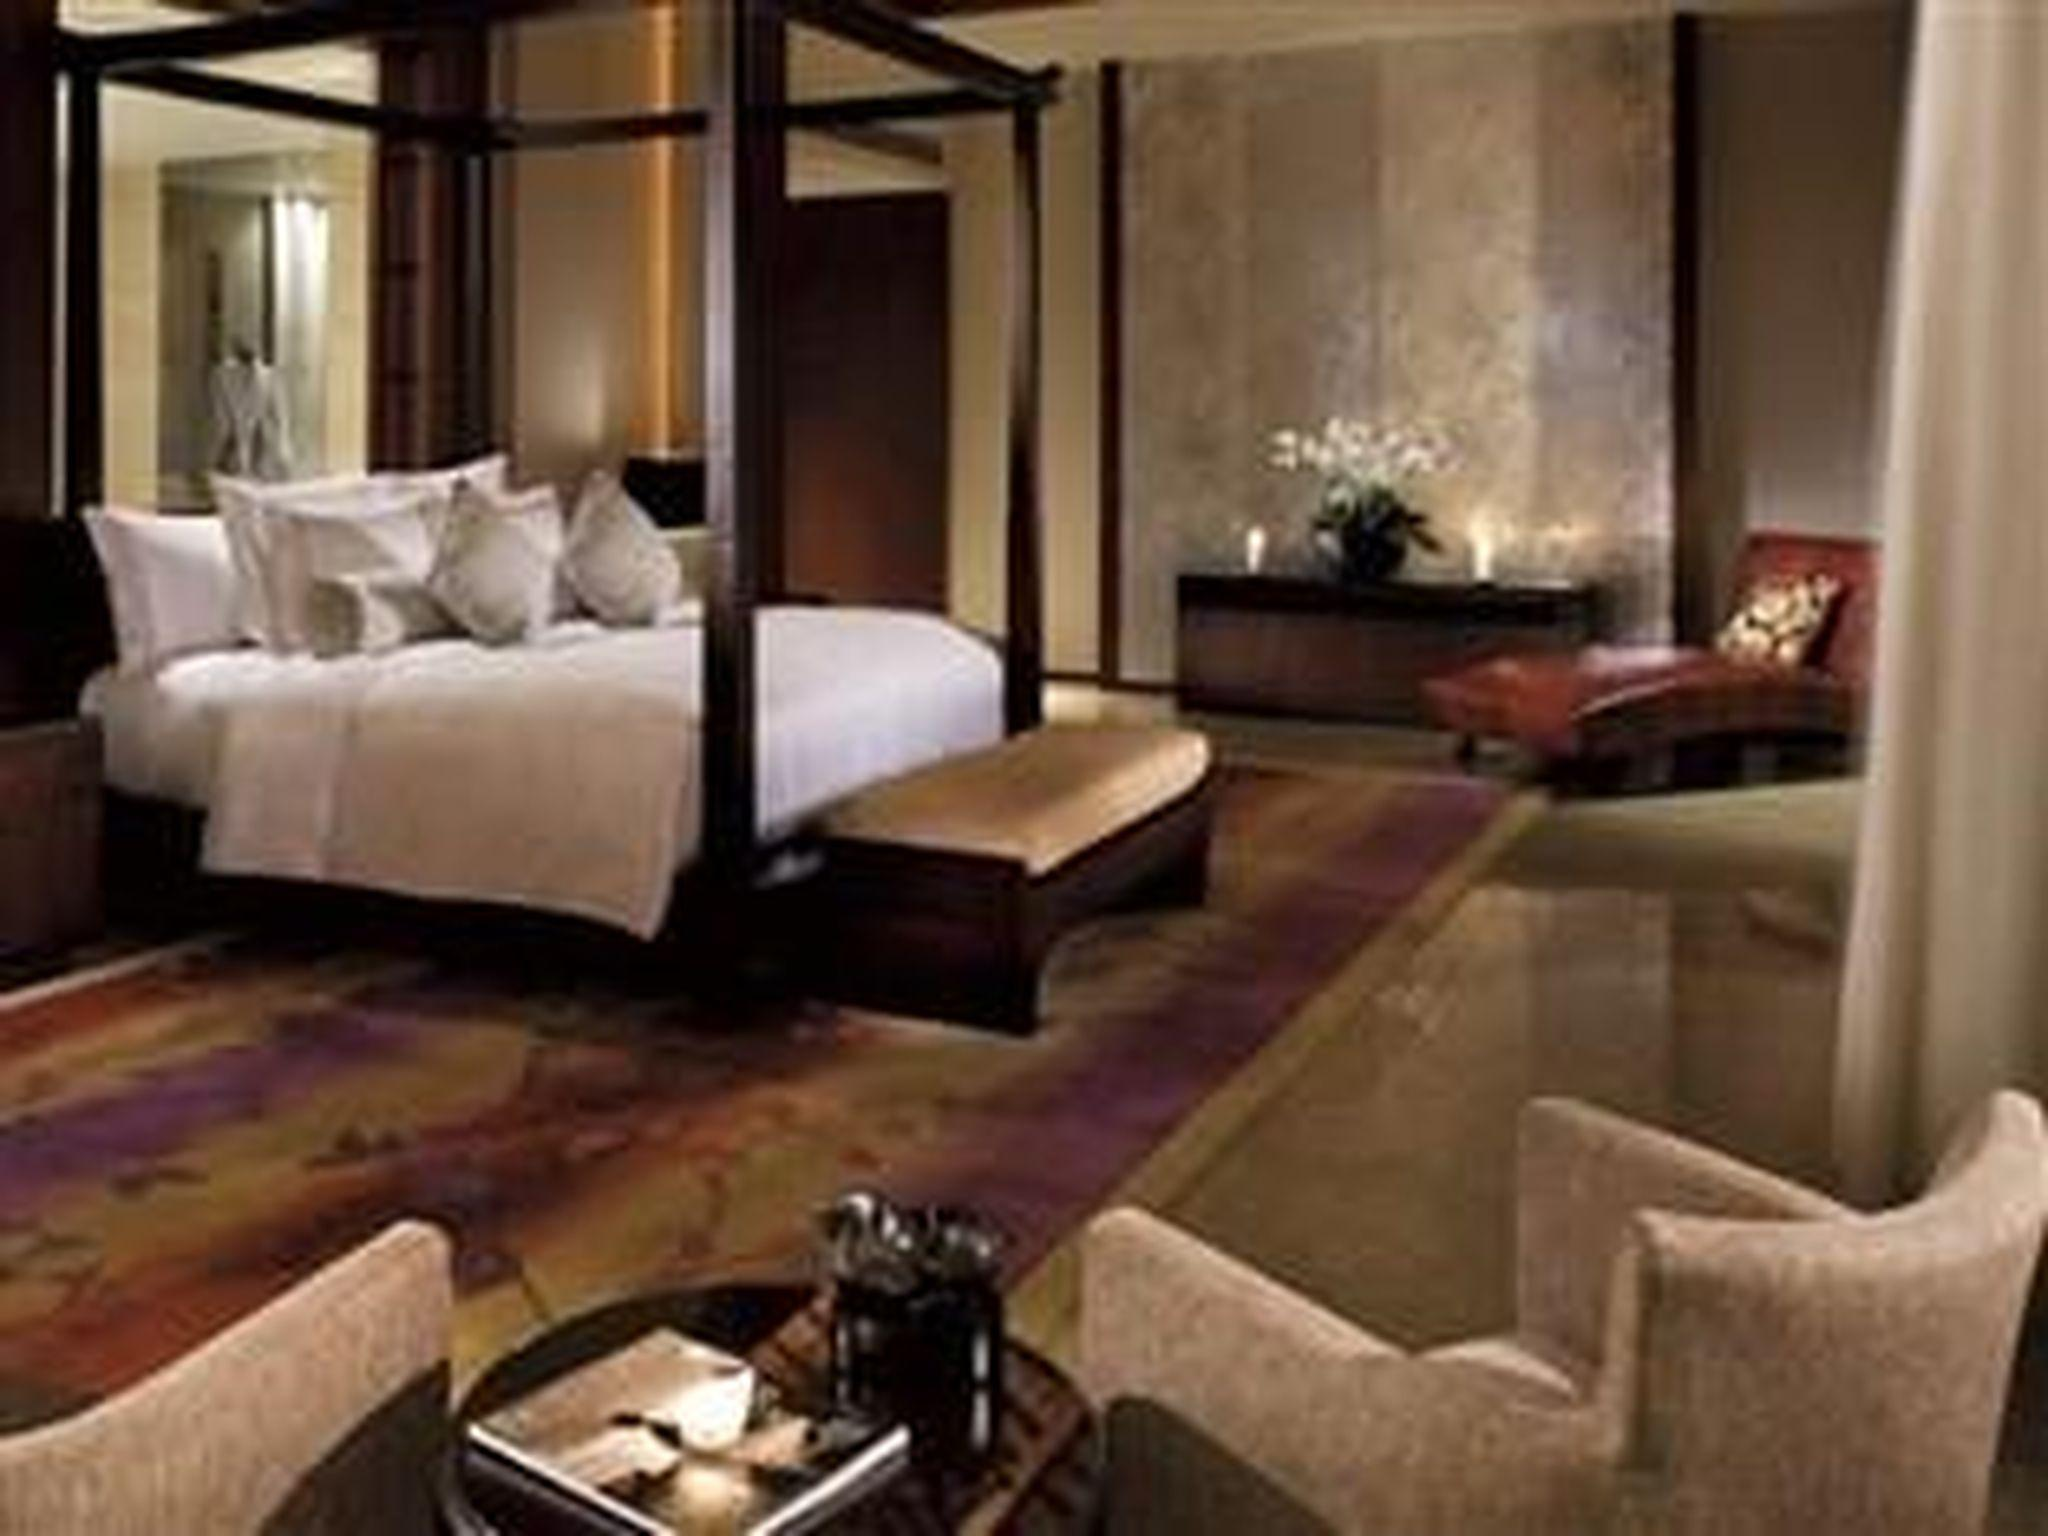 The Ritz-Carlton Suite, 1 Bedroom Presidential Suite, 1 King